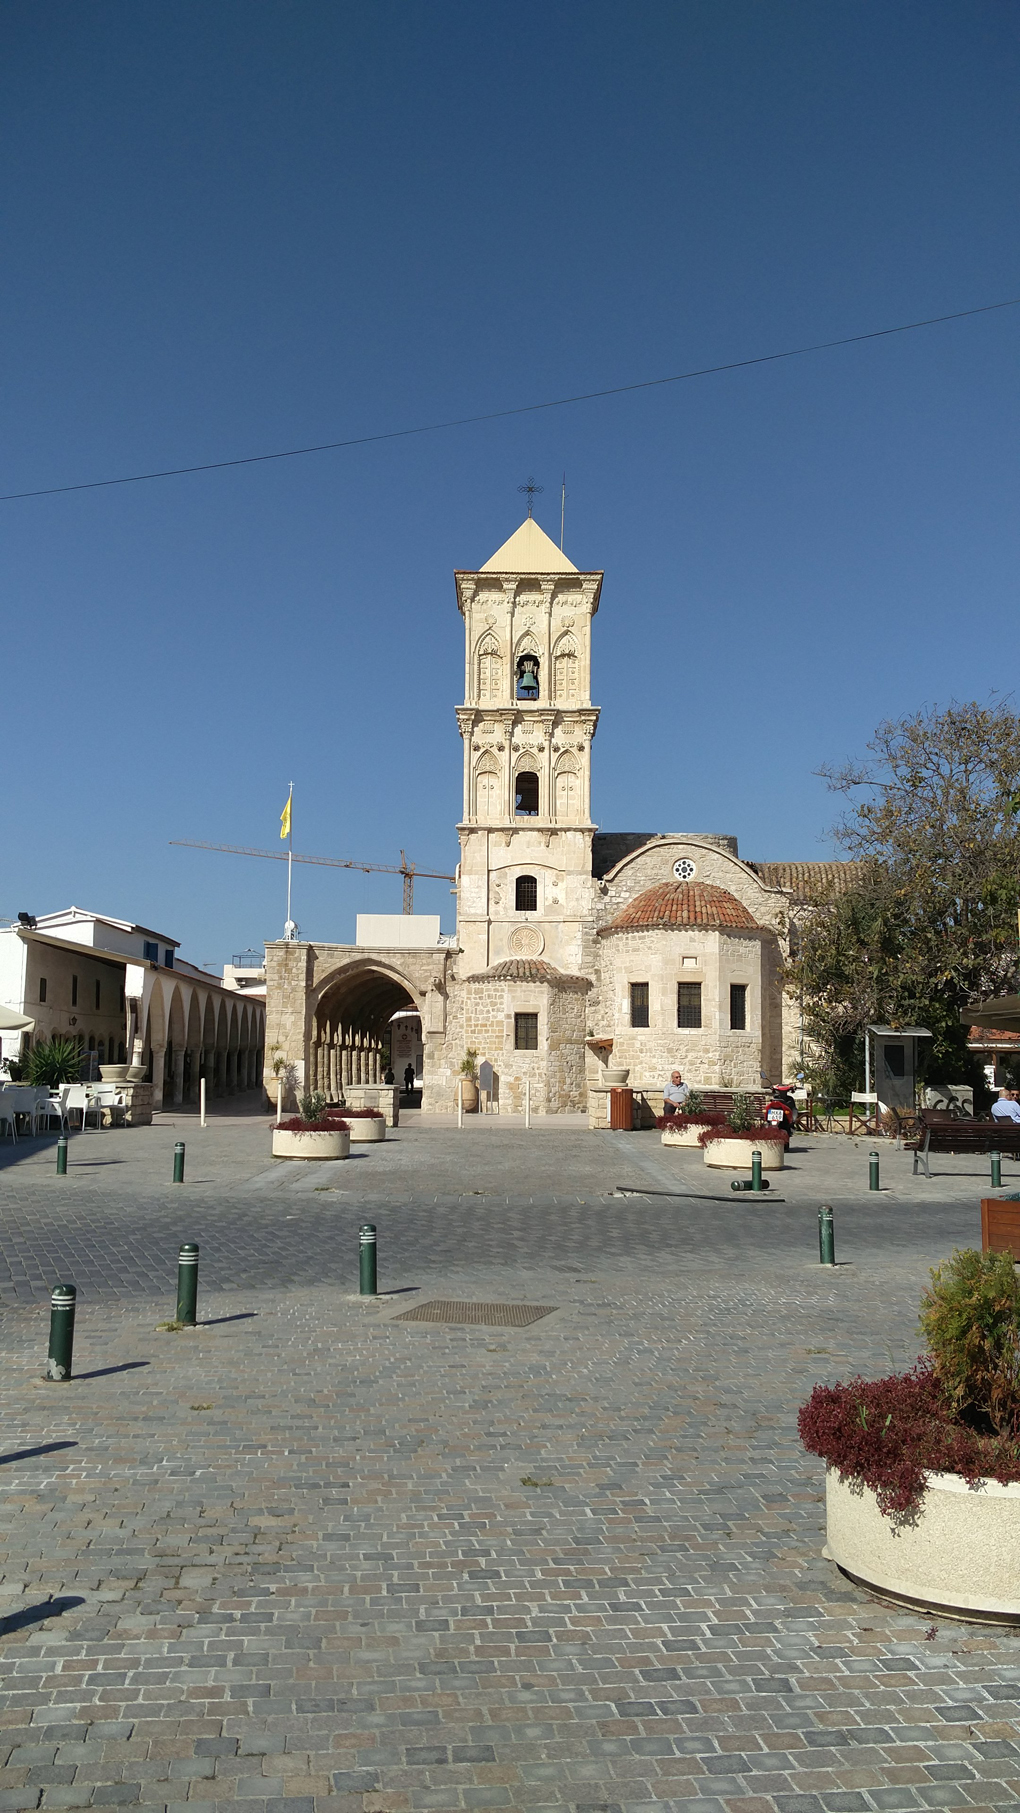 white church in a square in Cyprus